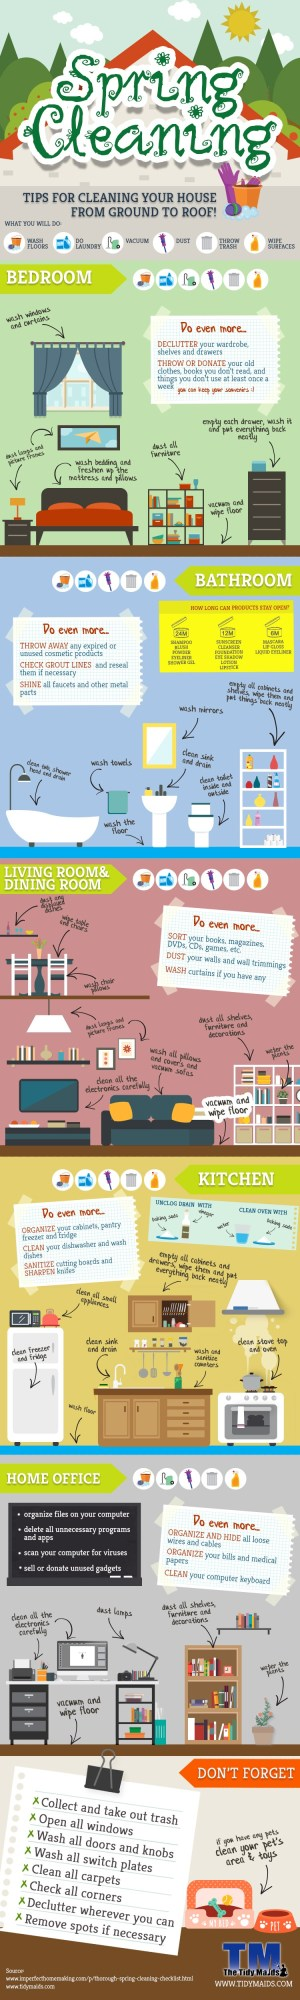 Spring Cleaning 101 -- Don't forget ANYTHING this year! Top to bottom for every room in the house. @Remodelaholic